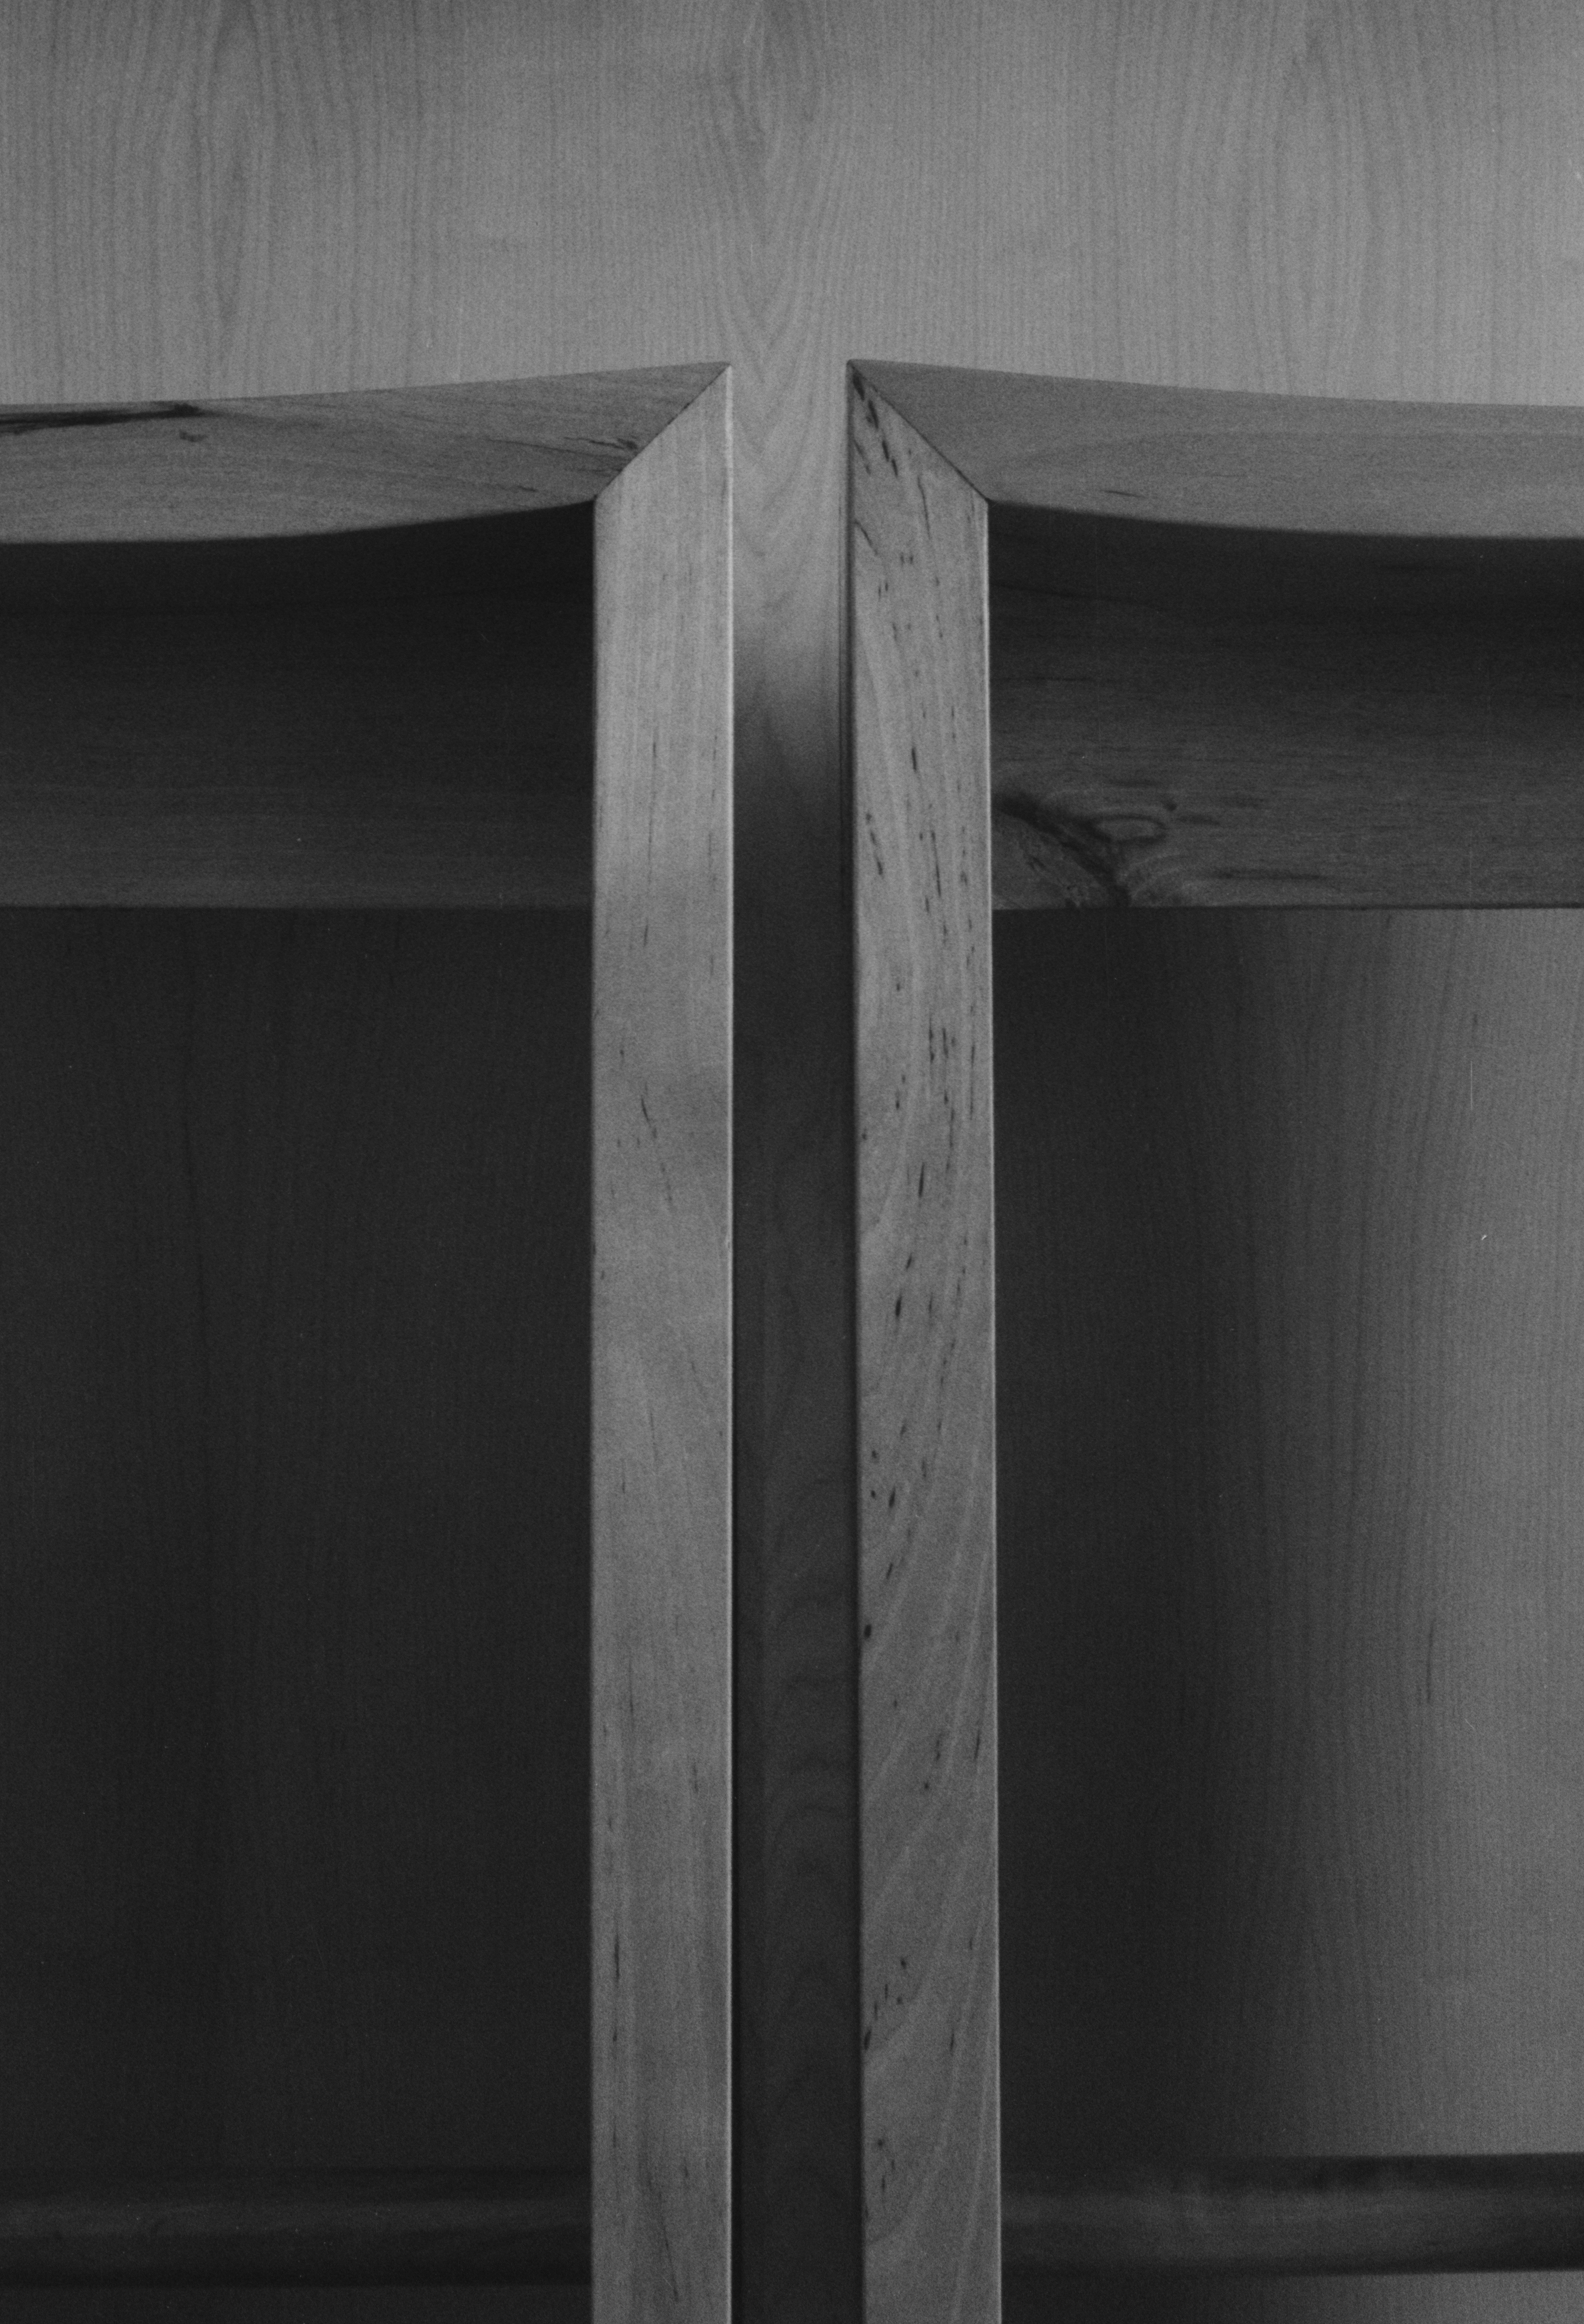 2.02 bar stool detail 35 mm film.jpg